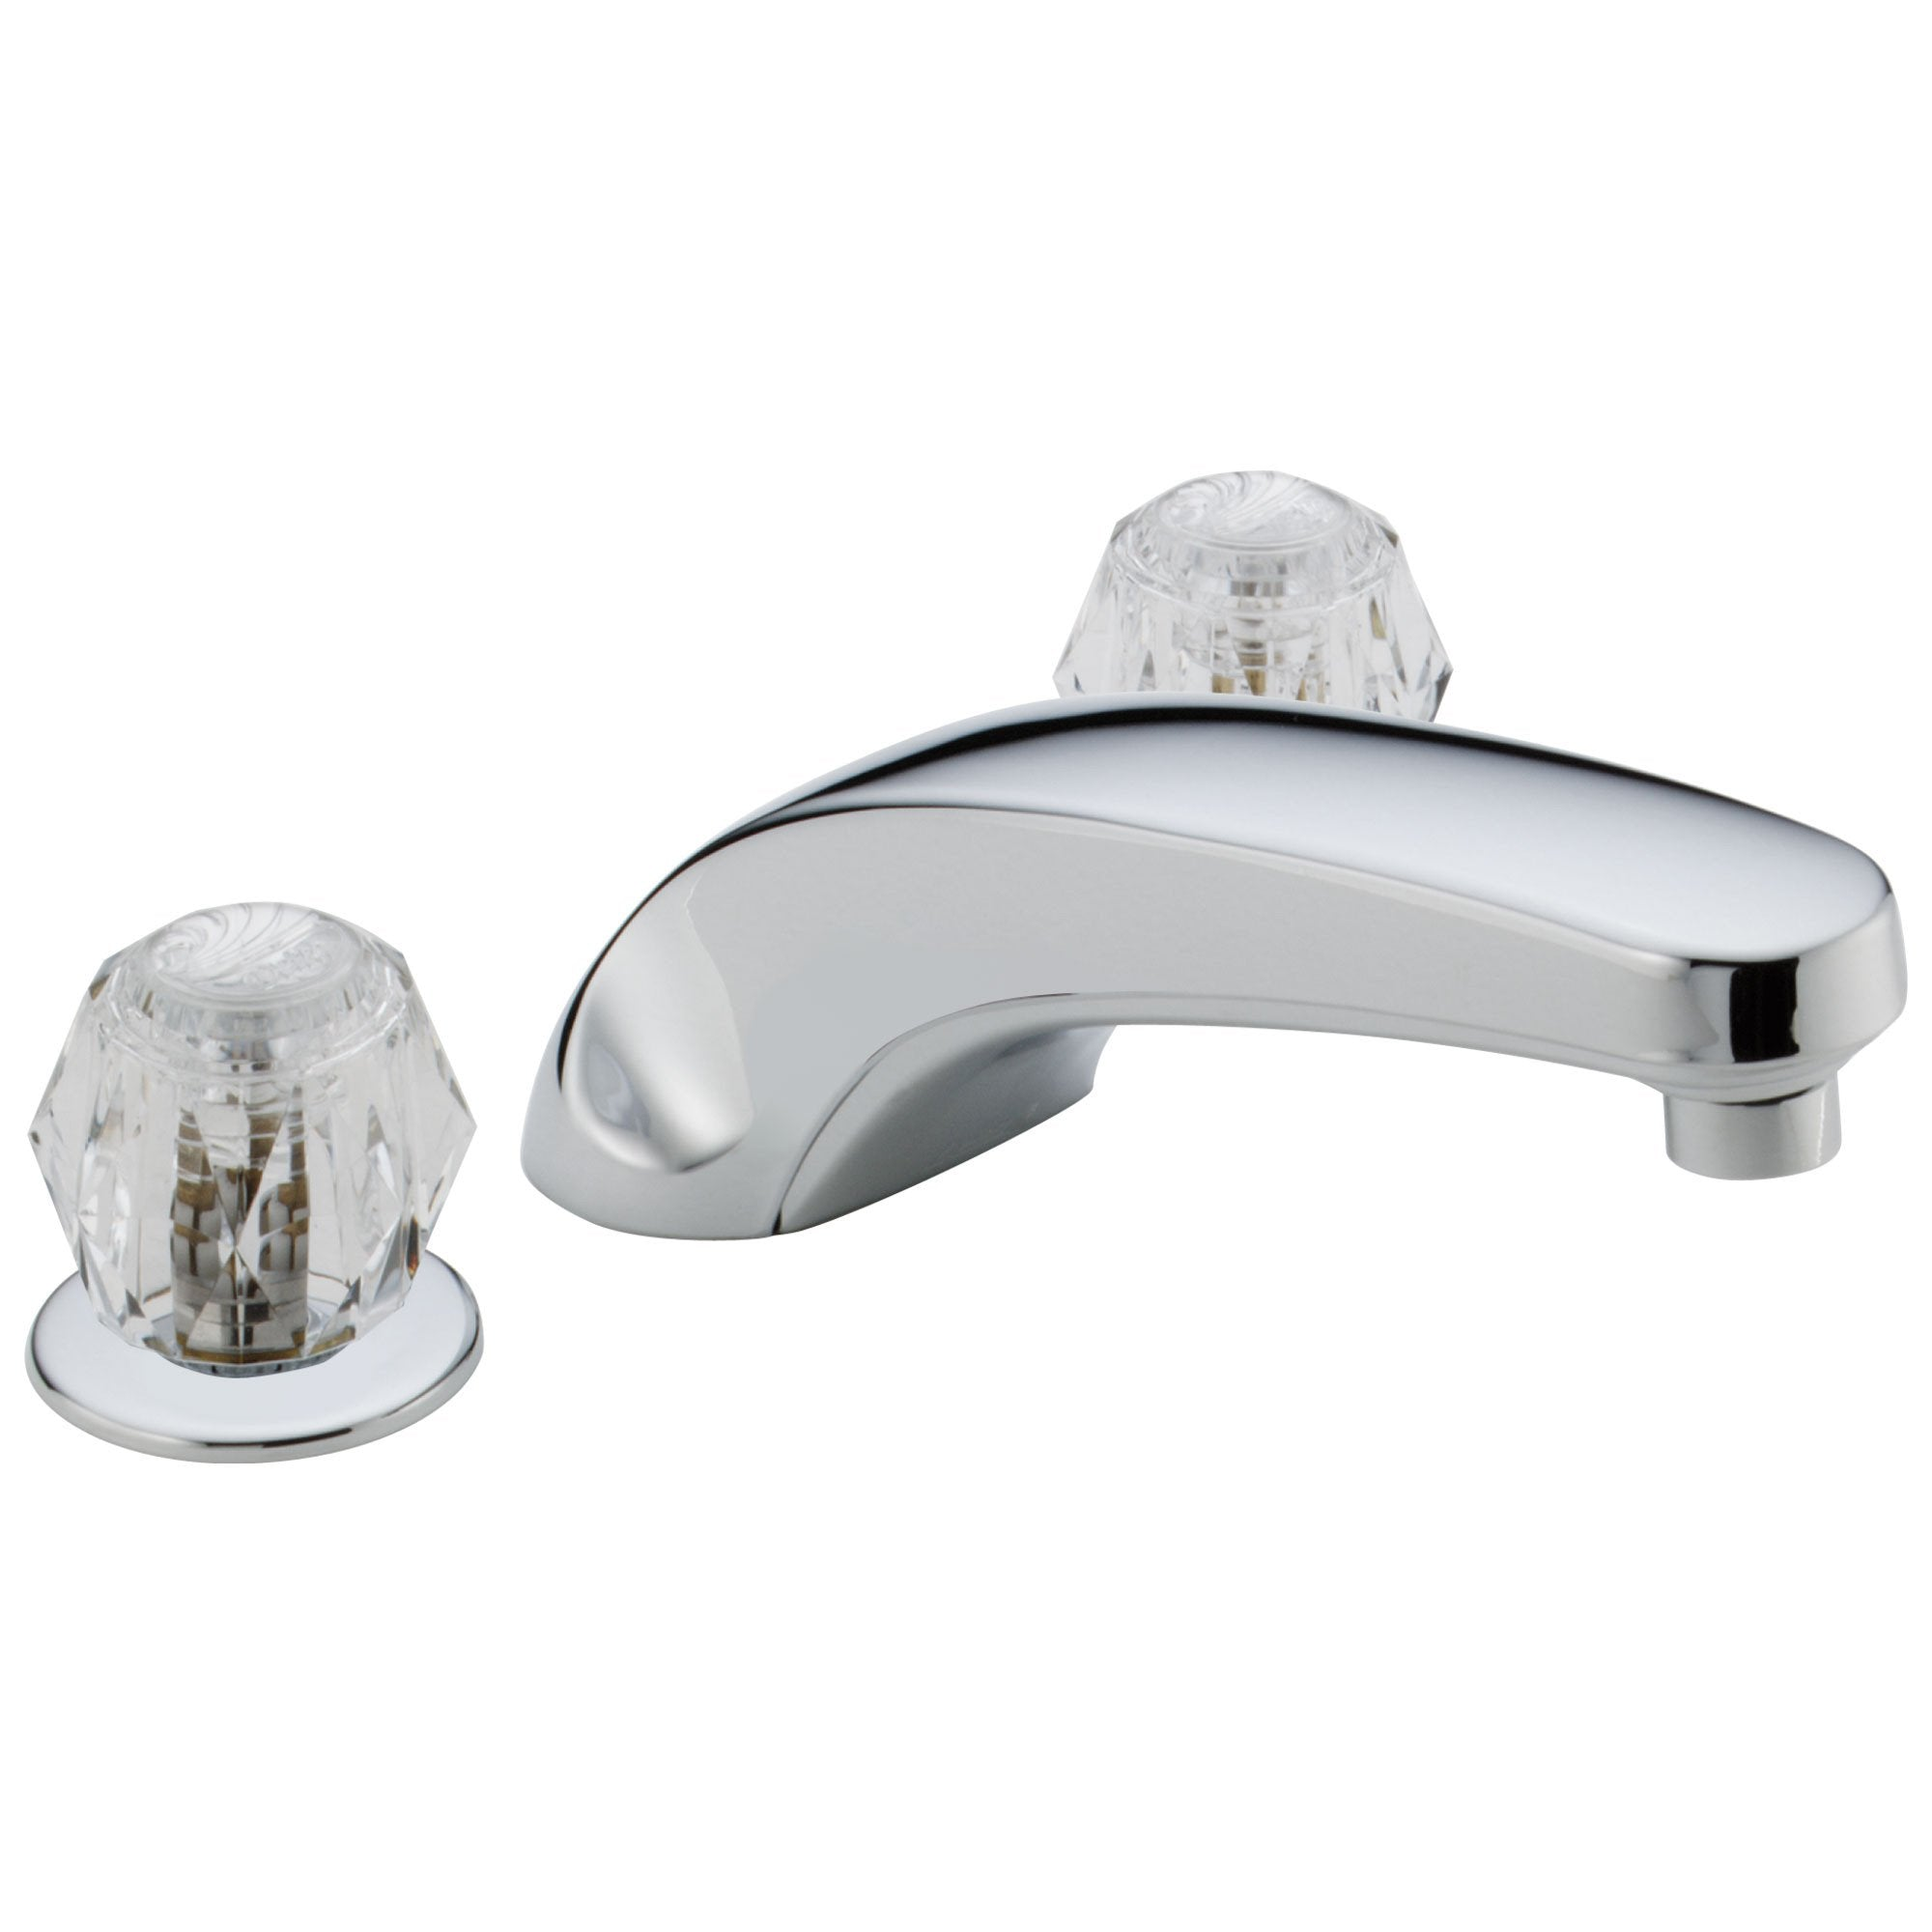 Delta Chrome Finish Deck Mounted Widespread Roman Tub Filler Faucet Trim Kit (Valve Sold Separately) DT2710